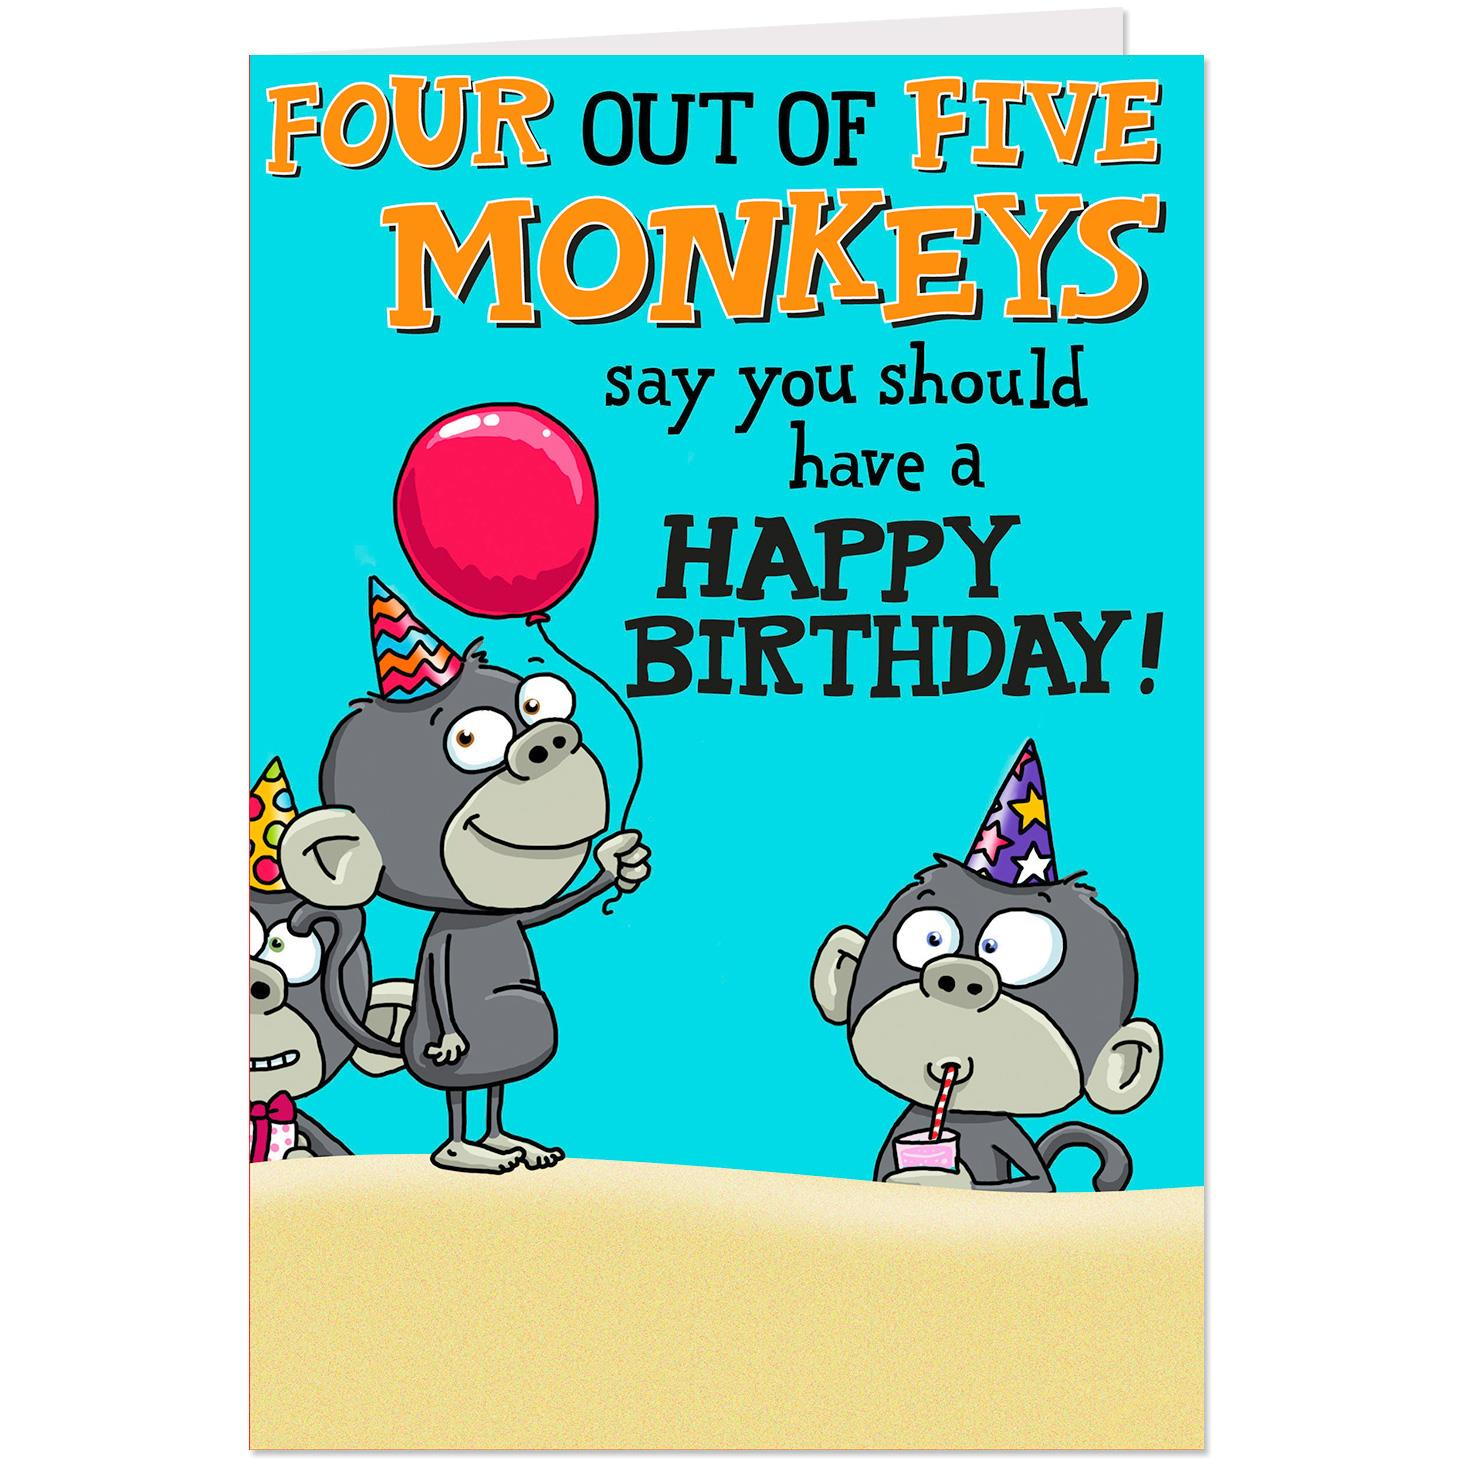 Four Out Of Five Monkeys Funny Pop Up Birthday Card From